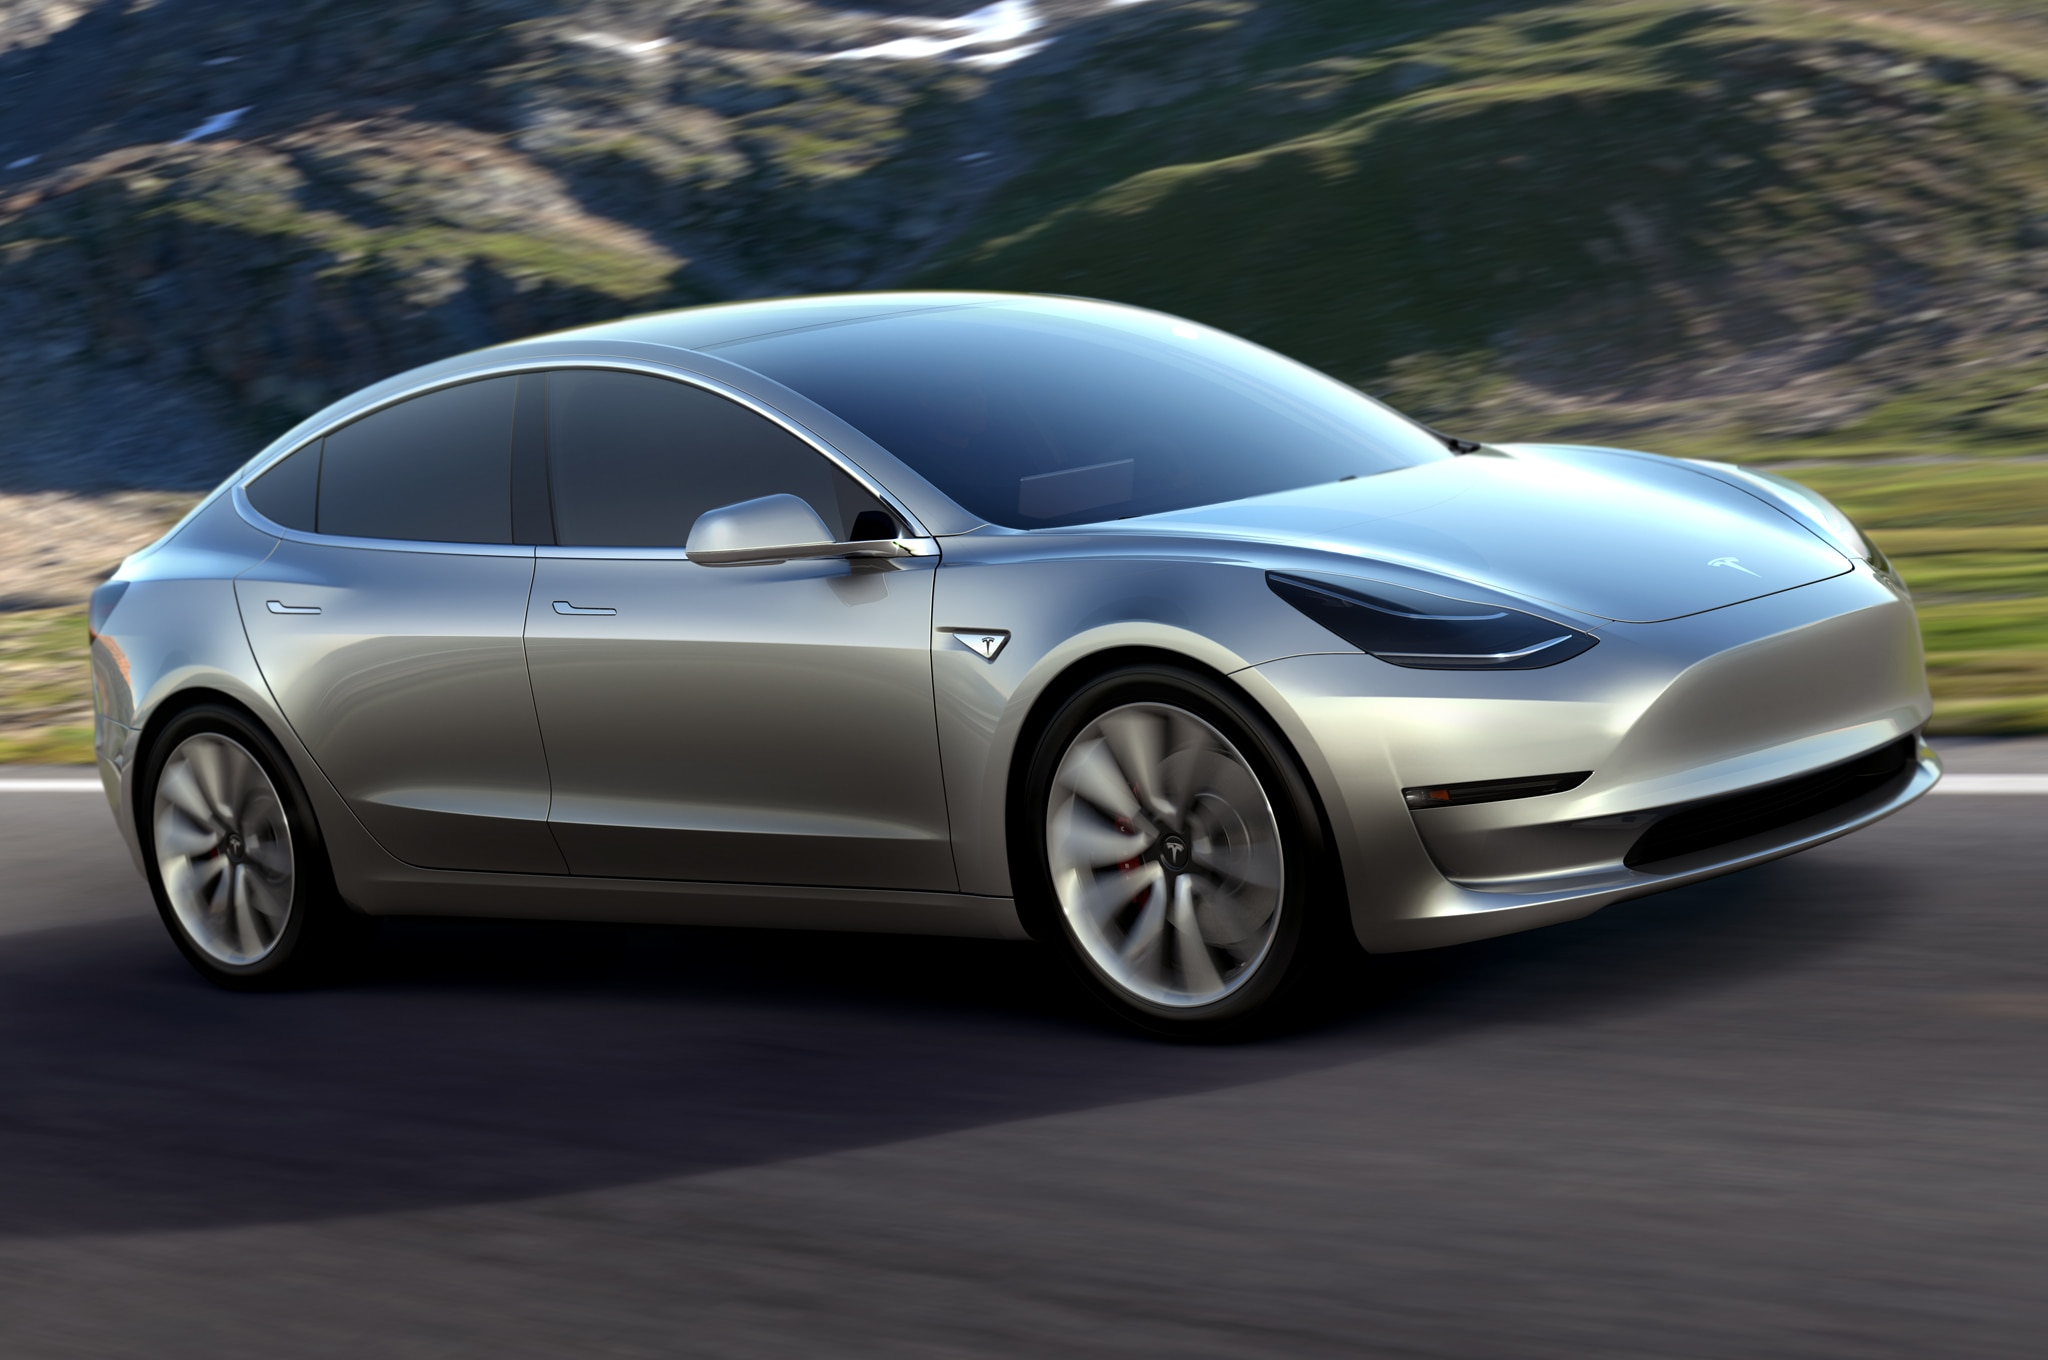 Tesla Model 3 in motion